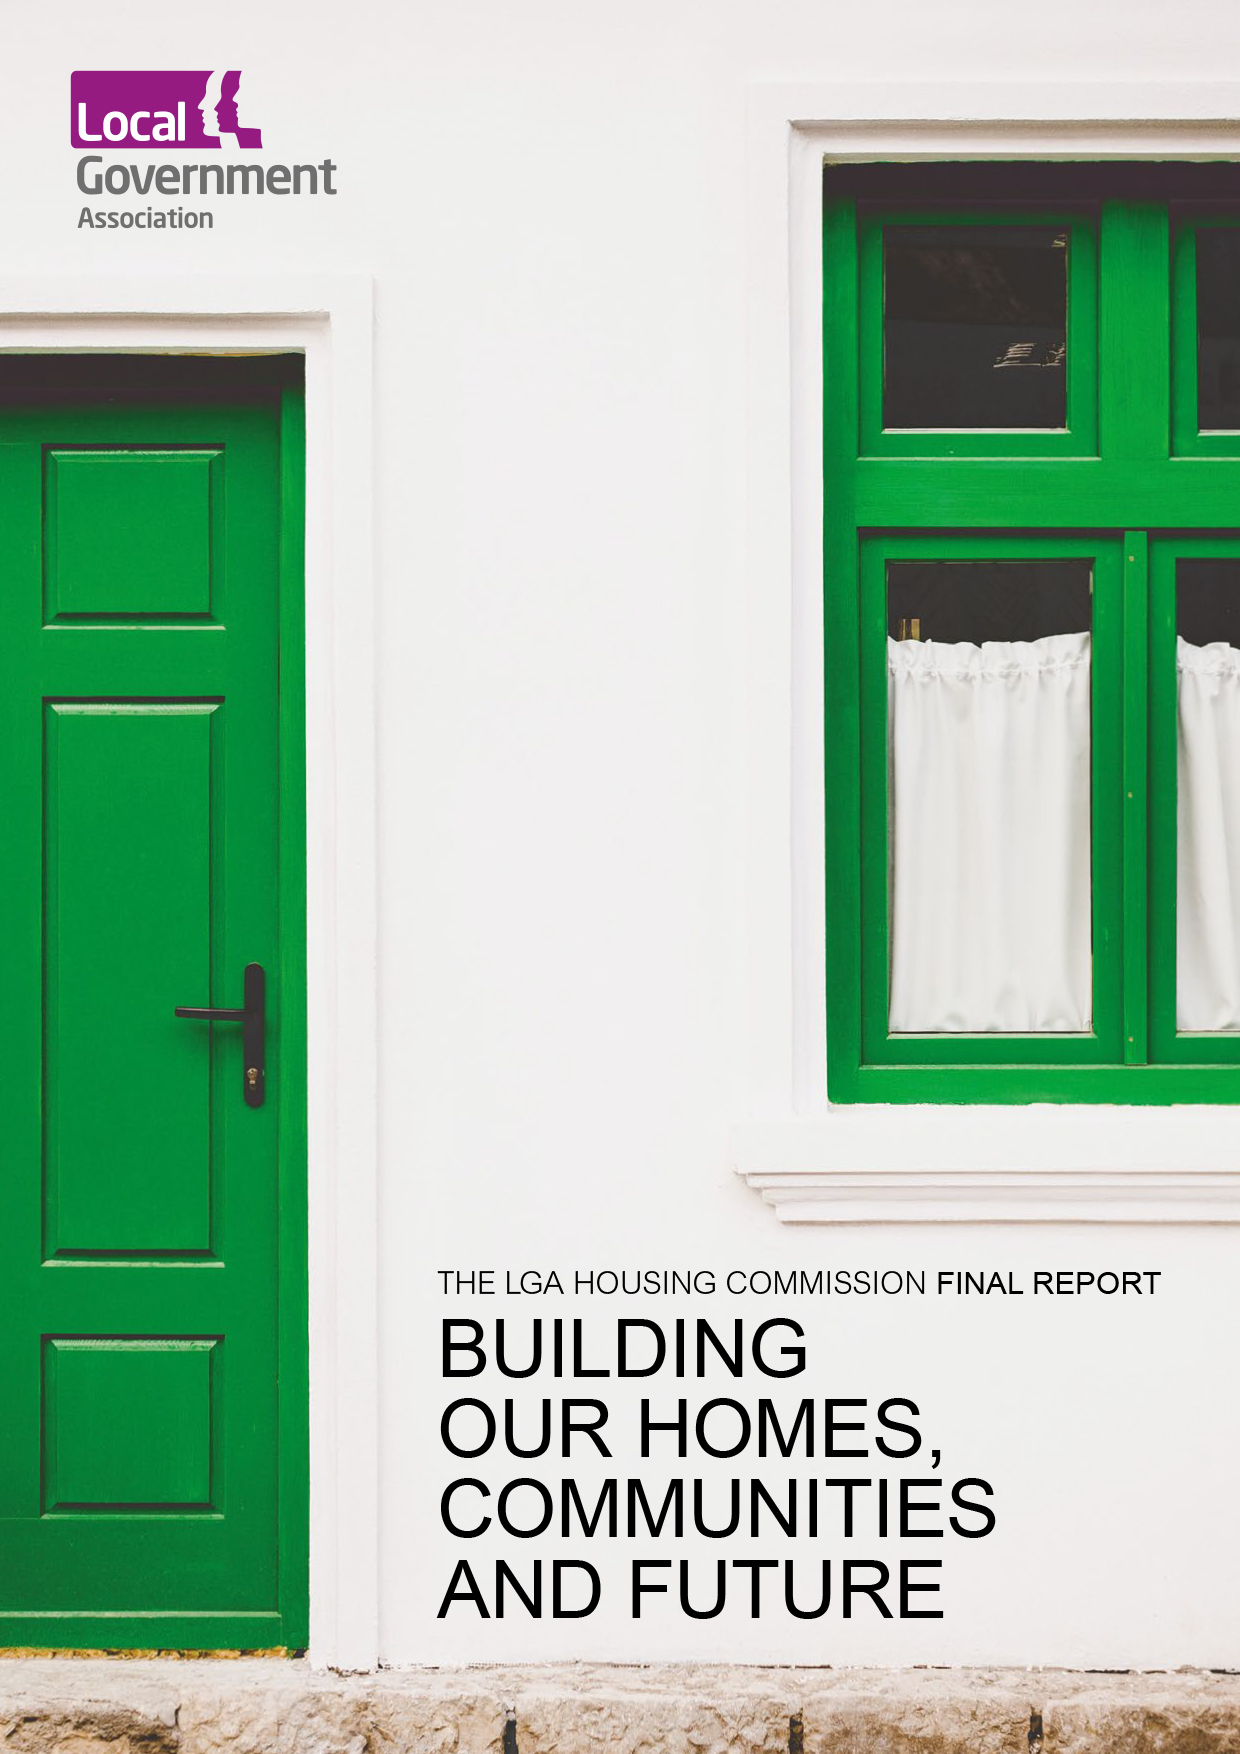 Building our homes, communities and future